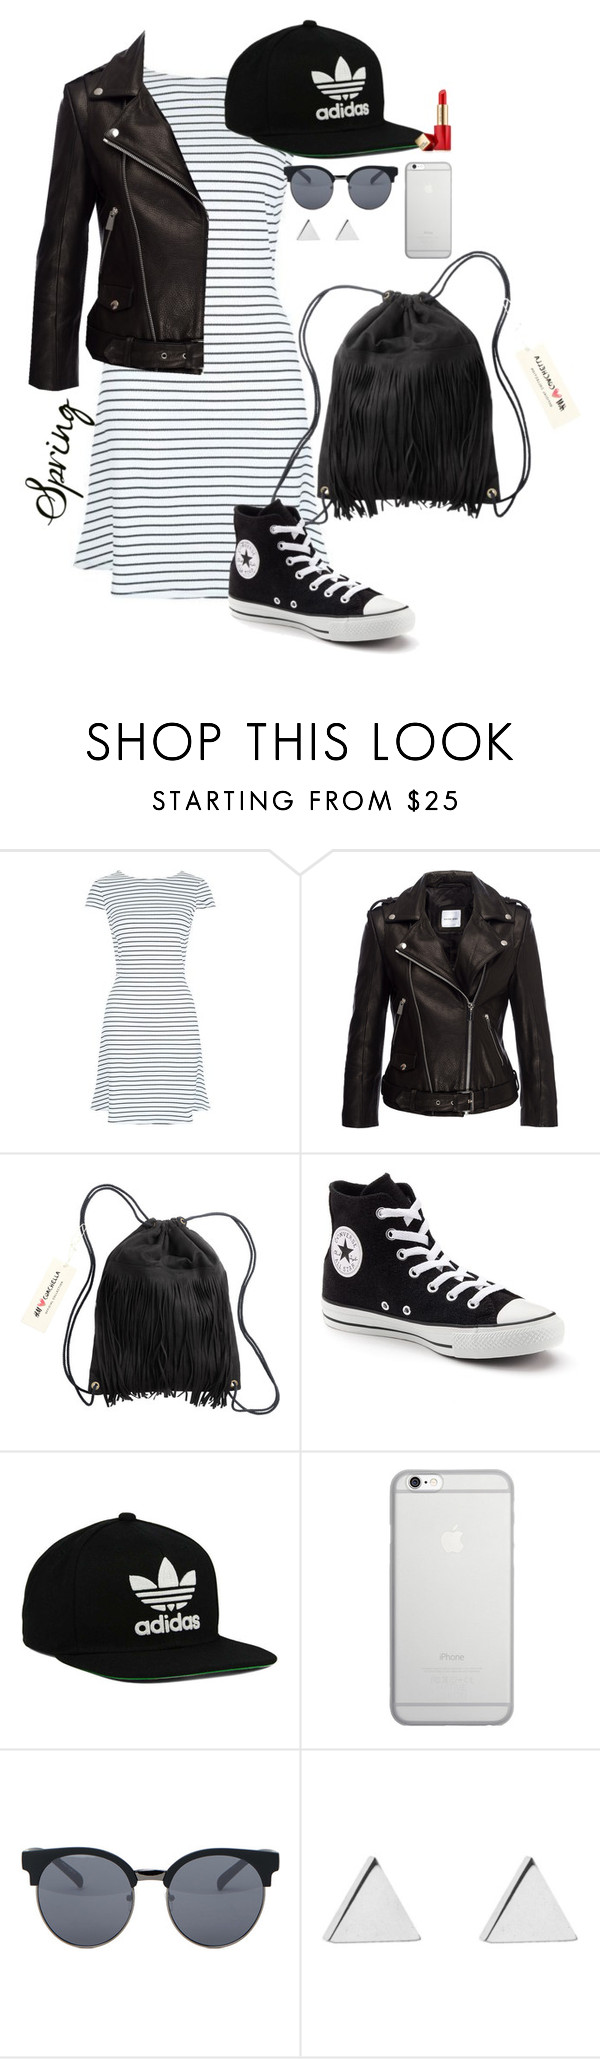 """""""Bez tytułu #44"""" by curly-hair123 ❤ liked on Polyvore featuring H&M, Converse, adidas Originals, Native Union, Quay, Jennifer Meyer Jewelry and Estée Lauder"""